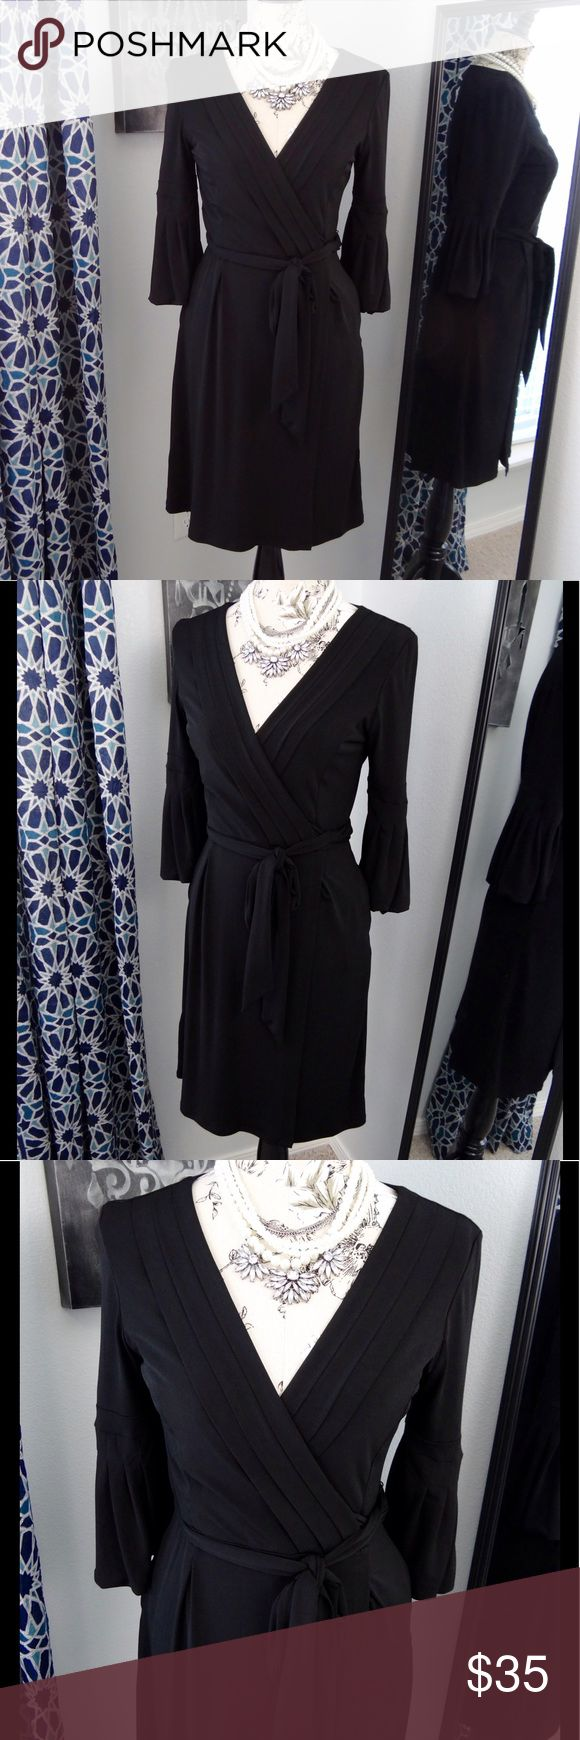 Max and Cleo black wrap dress with pockets Max and Cleo black wrap dress. Like new, clean condition. No holes or stains, no pilling, no fade. Great condition! Strong black color. Size small, the bust measures at 17 inches across. The length is 38 inches. The dress has pockets! Smoke free and pet free home! Max and Cleo Dresses Midi